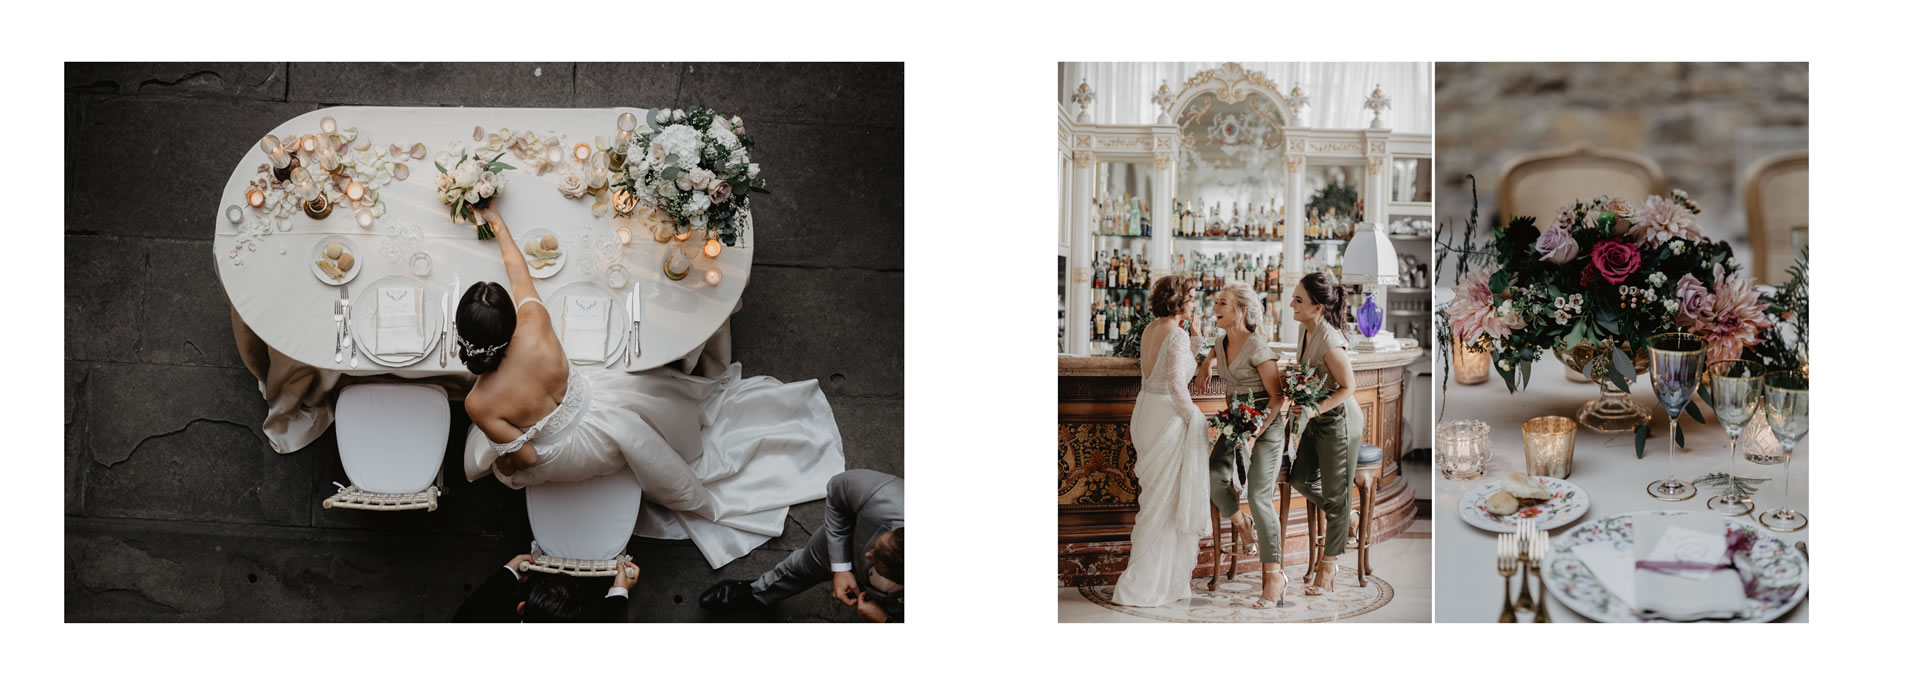 - 44 :: BEST OF 2018 WEDDING: A COLLECTION TO TELL ONE YEAR STORY :: Luxury wedding photography - 43 ::  - 44